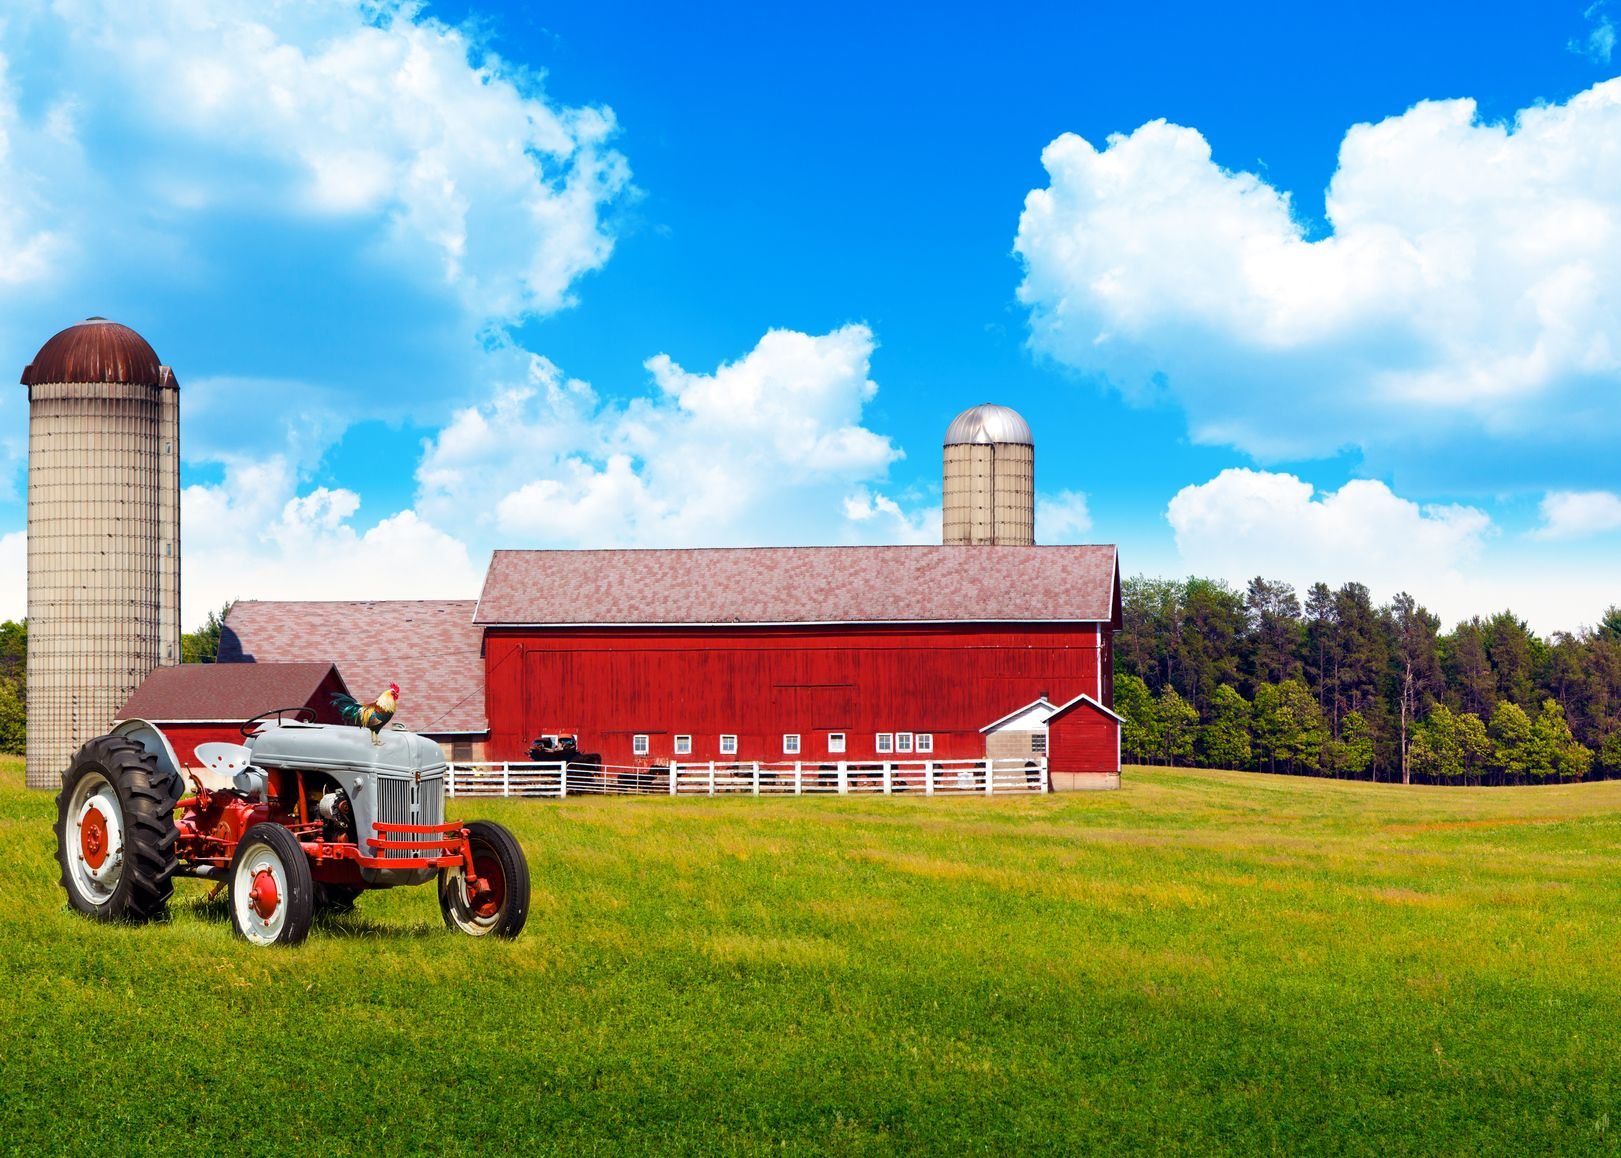 Port Jefferson, Long Island, NY. Farm & Ranch Insurance